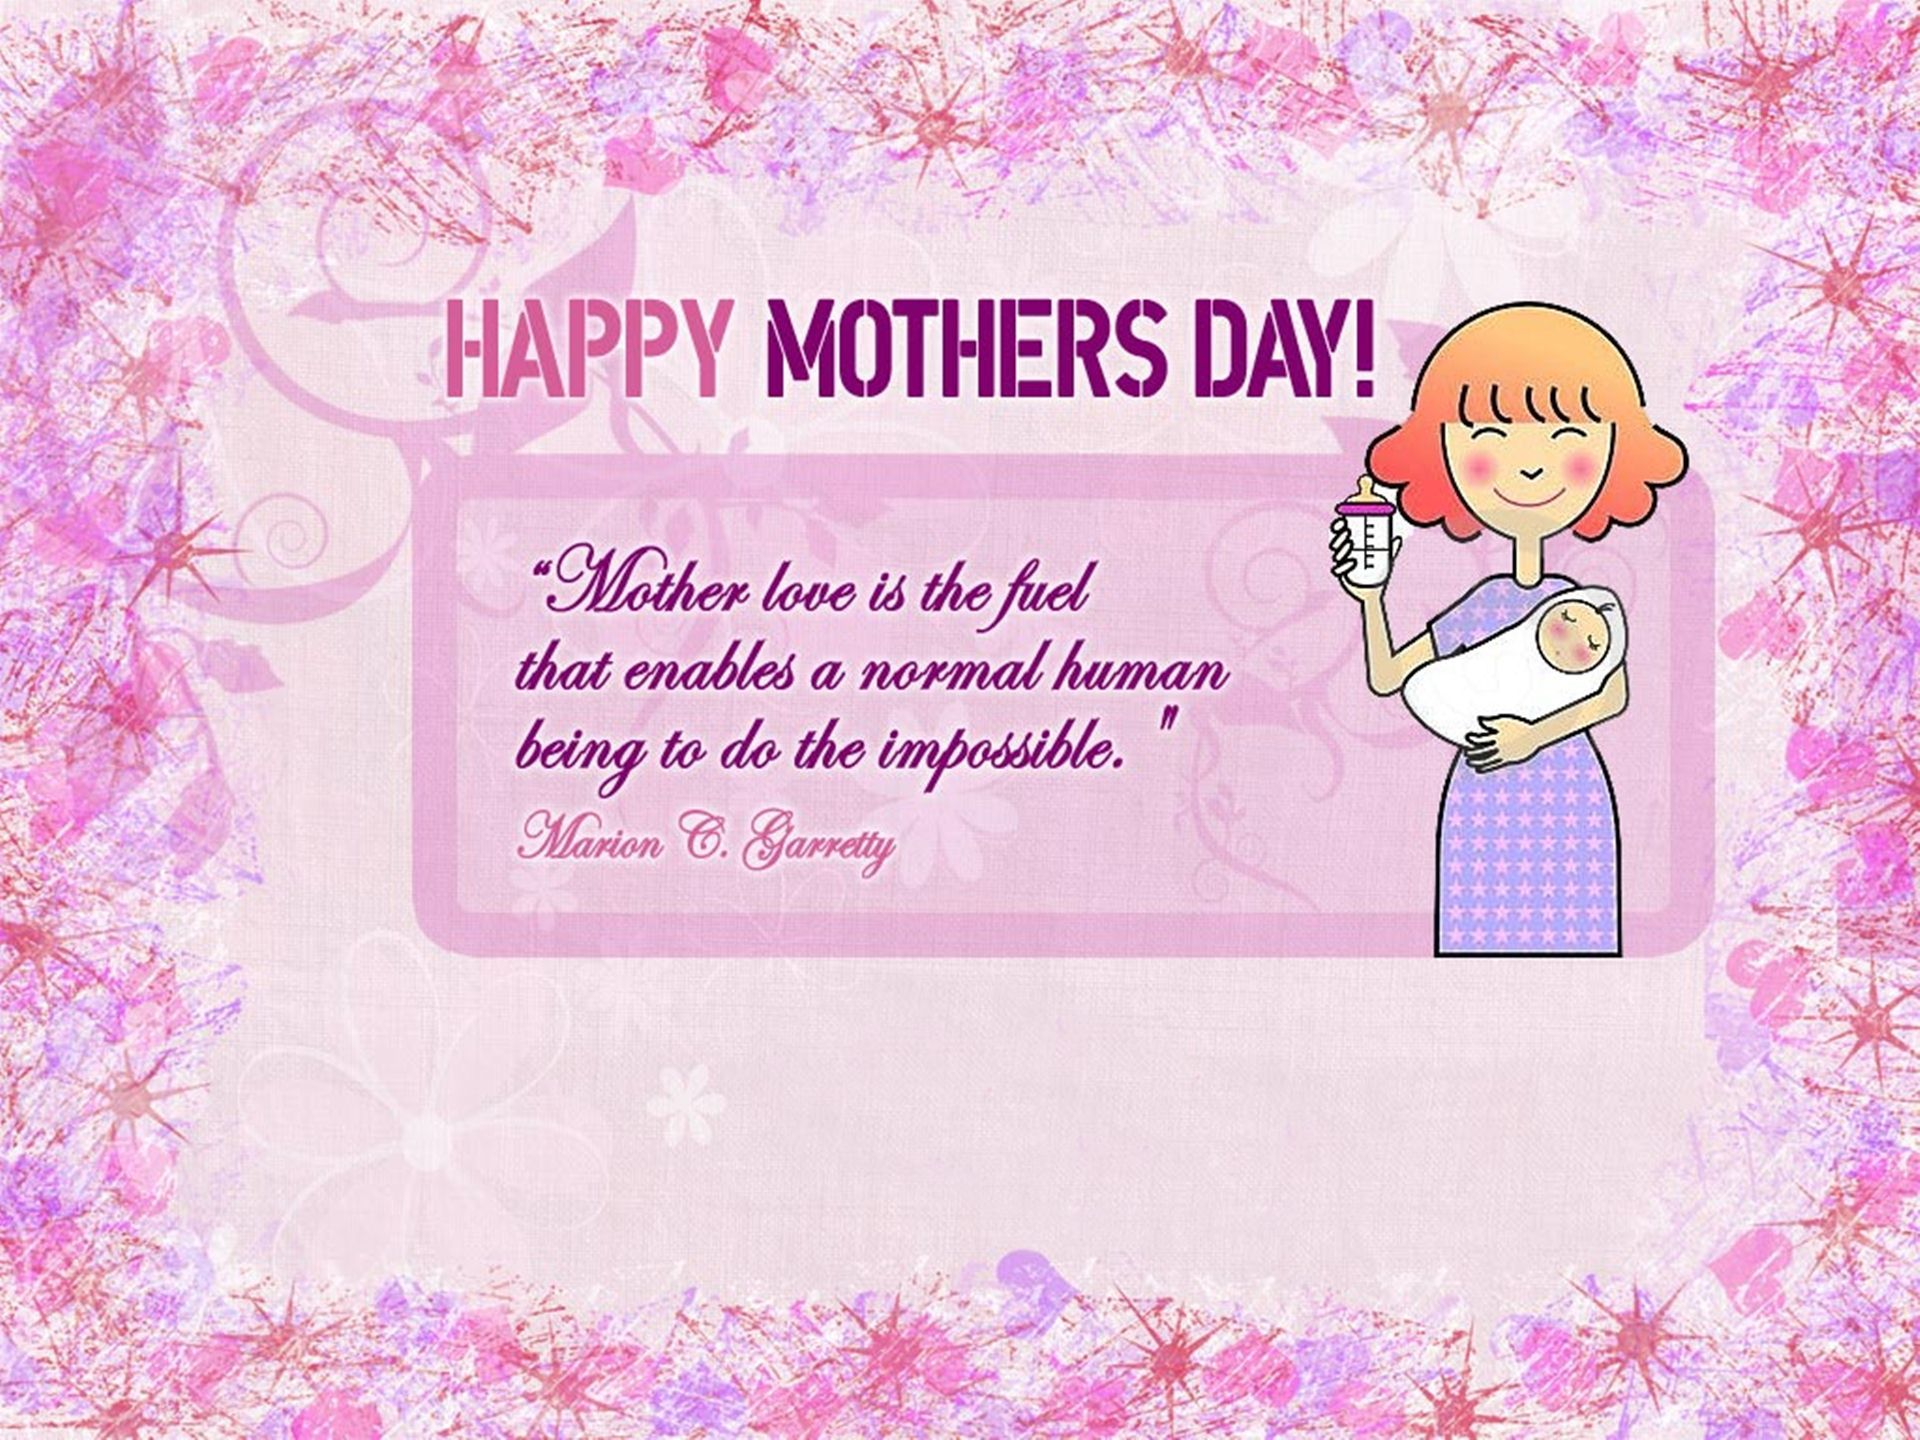 Mother's Day Poem Wallpapers - Wallpaper Cave